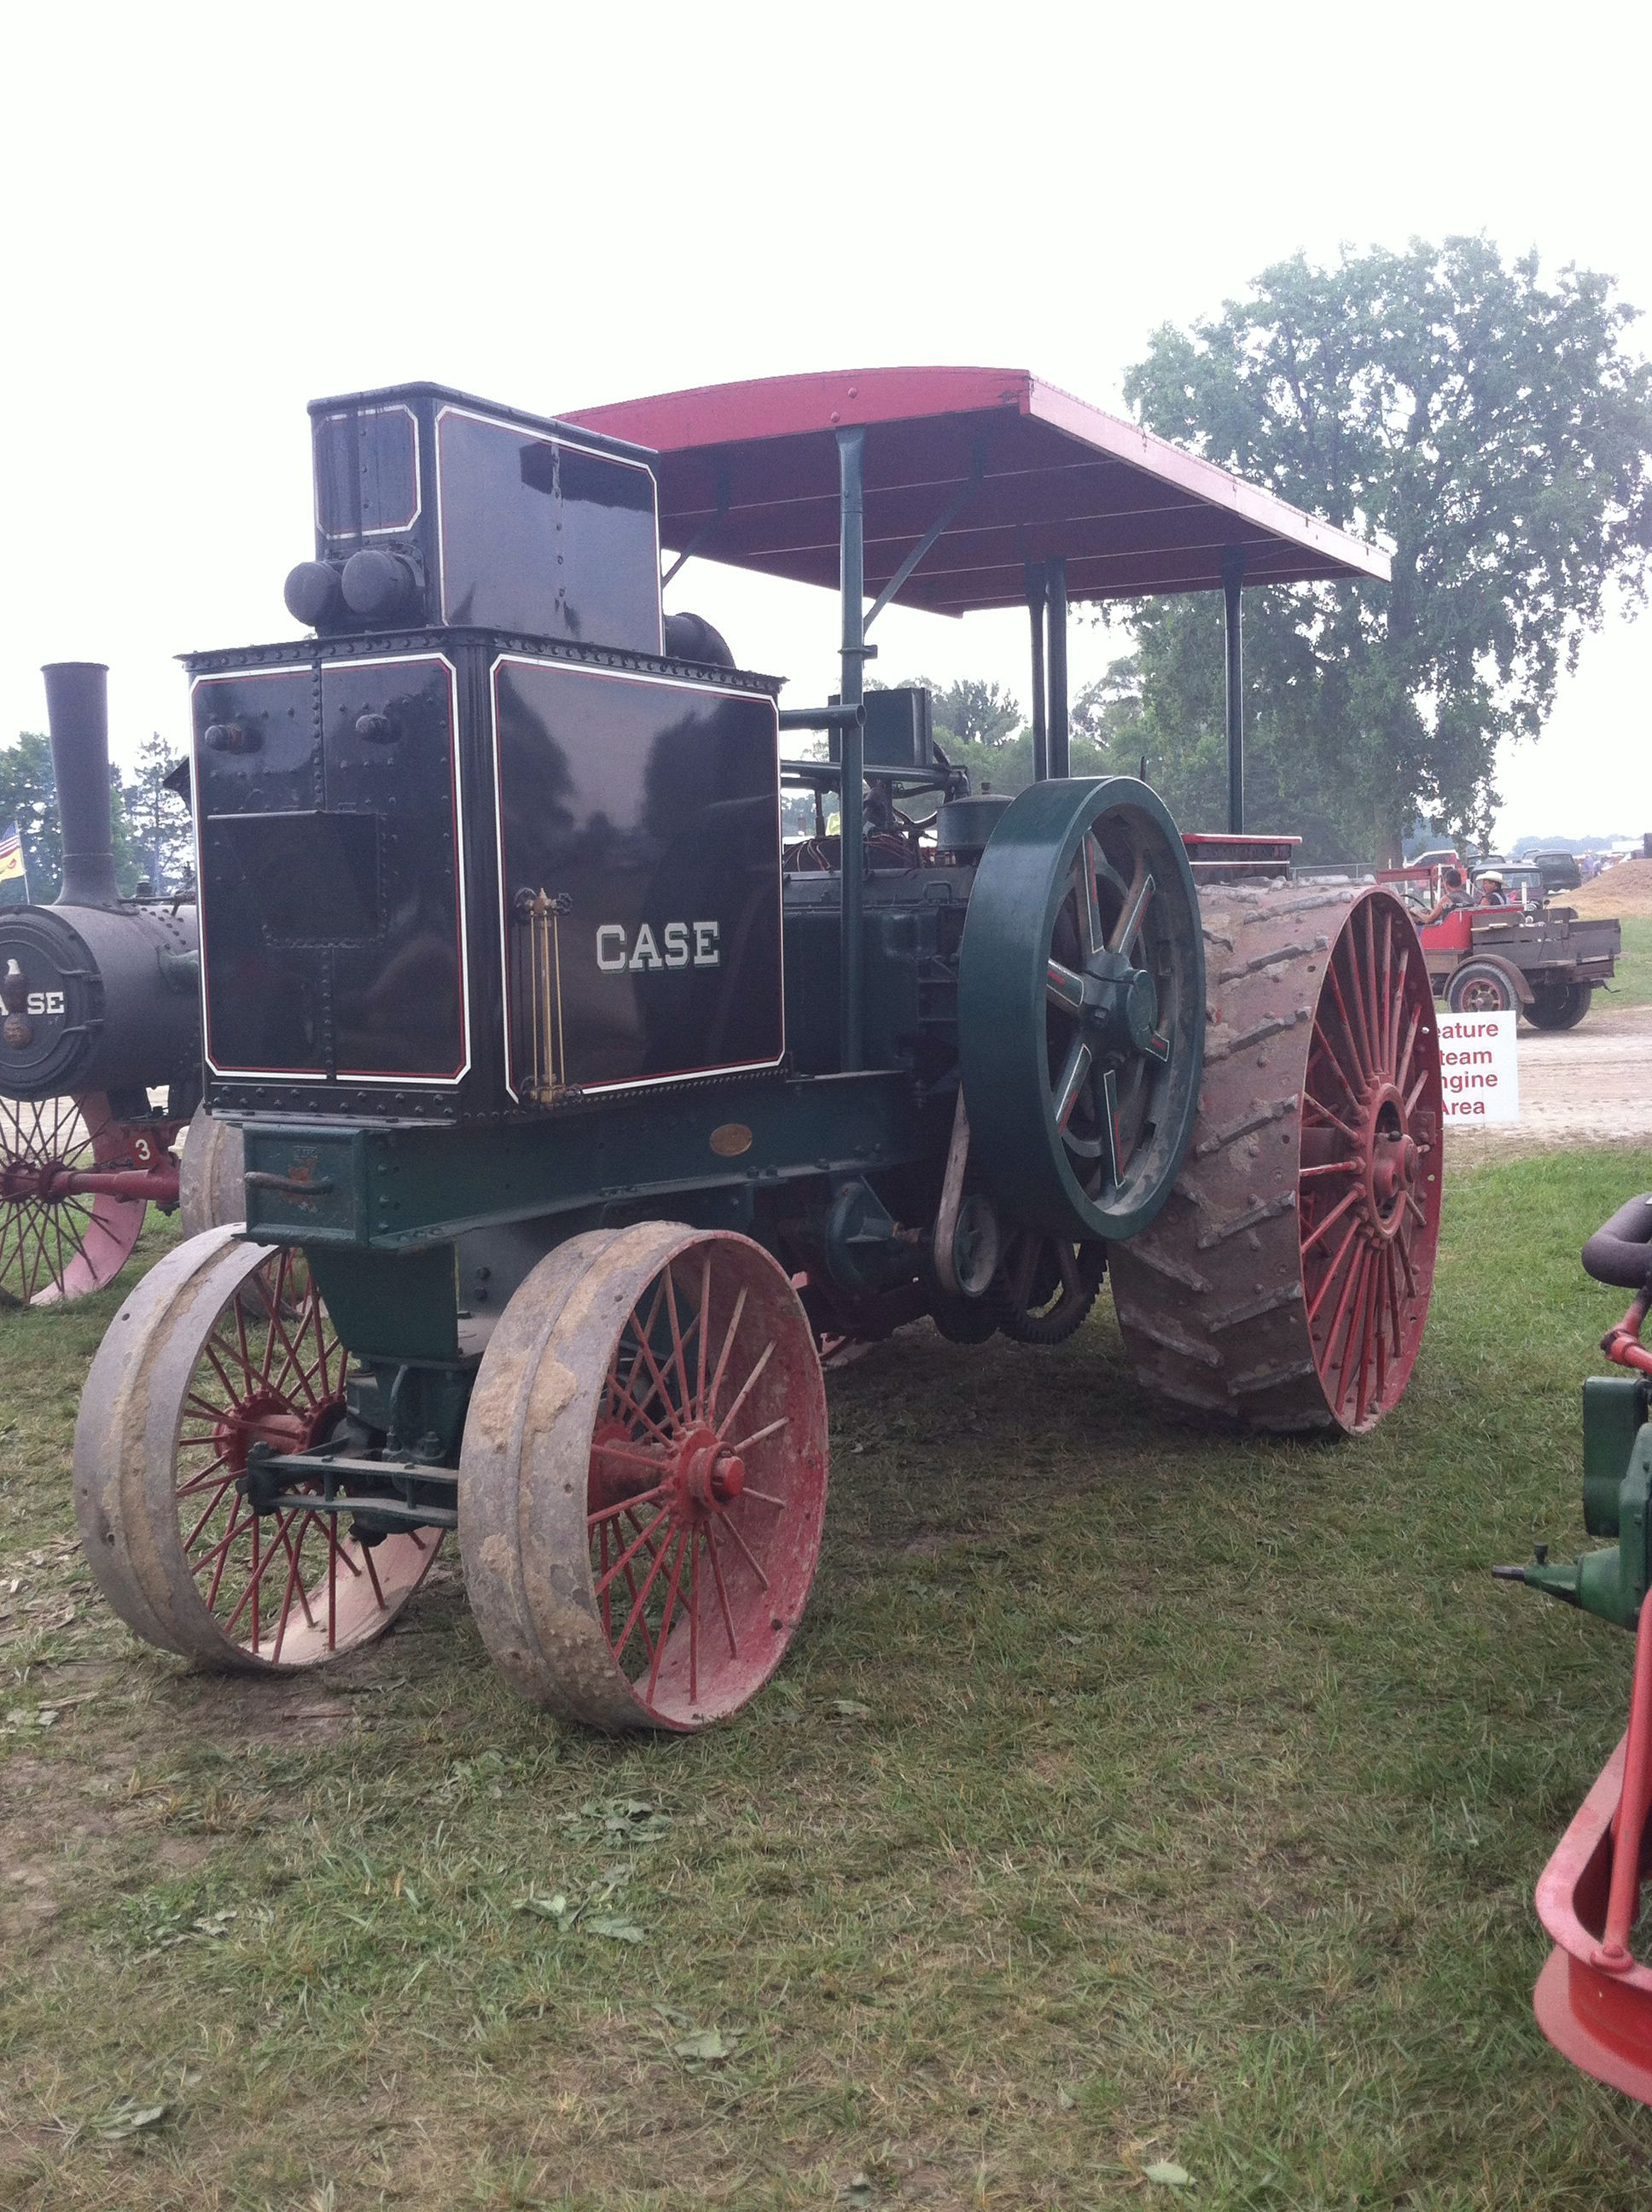 A Over The Top Restoration On This 1912 Case 30 60 One Of Just Six Know To Exists With Images Antique Tractors Vintage Tractors Old Tractors